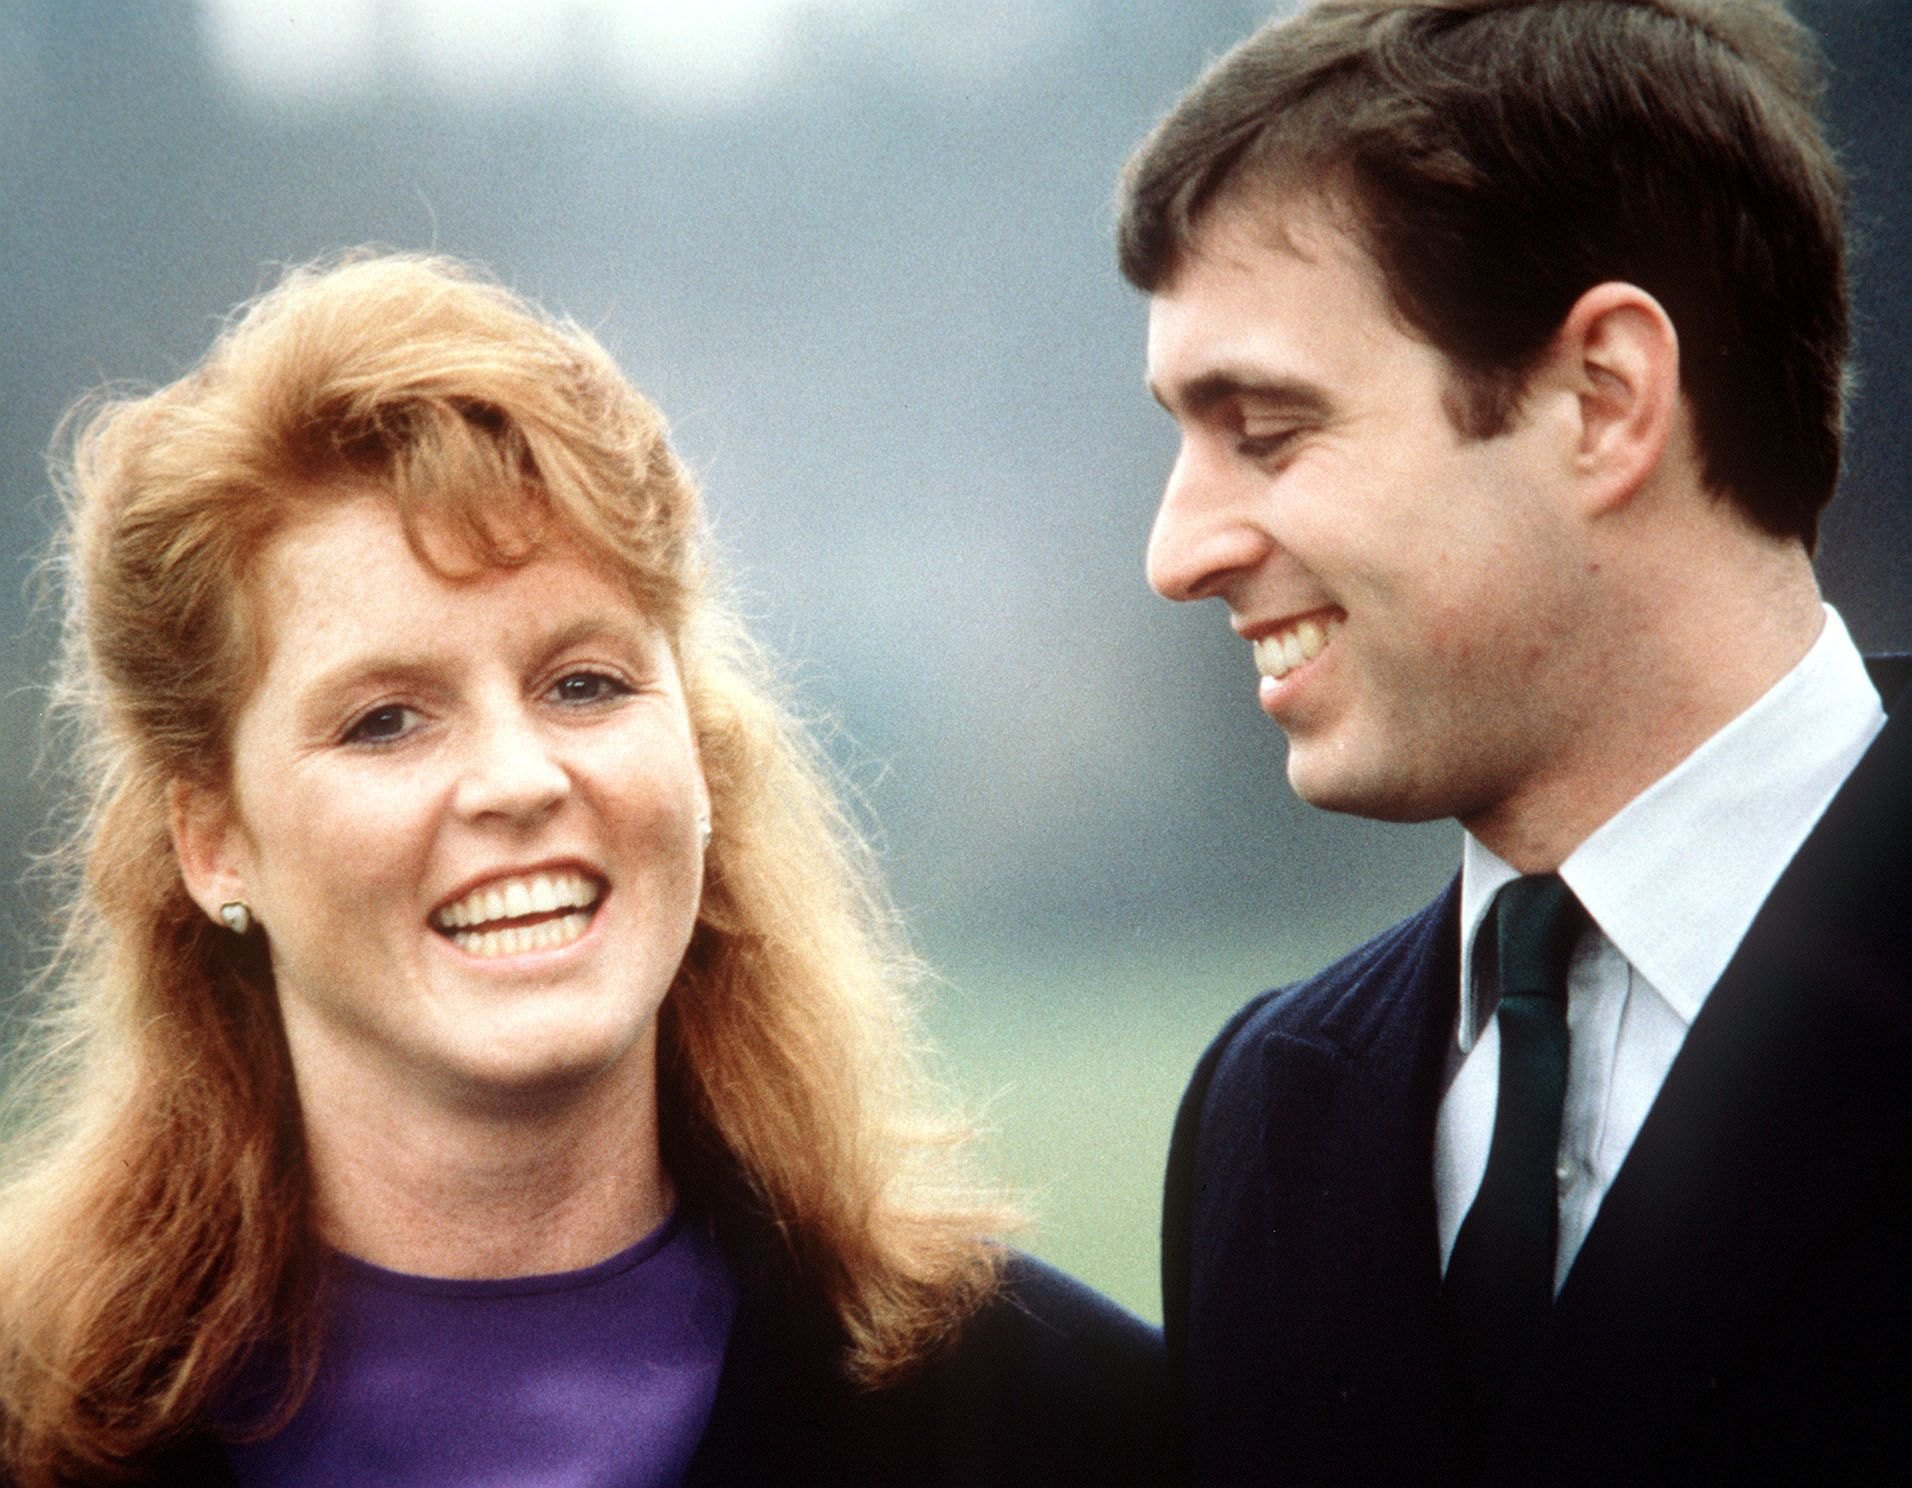 DUCHESS OF YORK/PRINCE ANDREW ENGAGEMENT